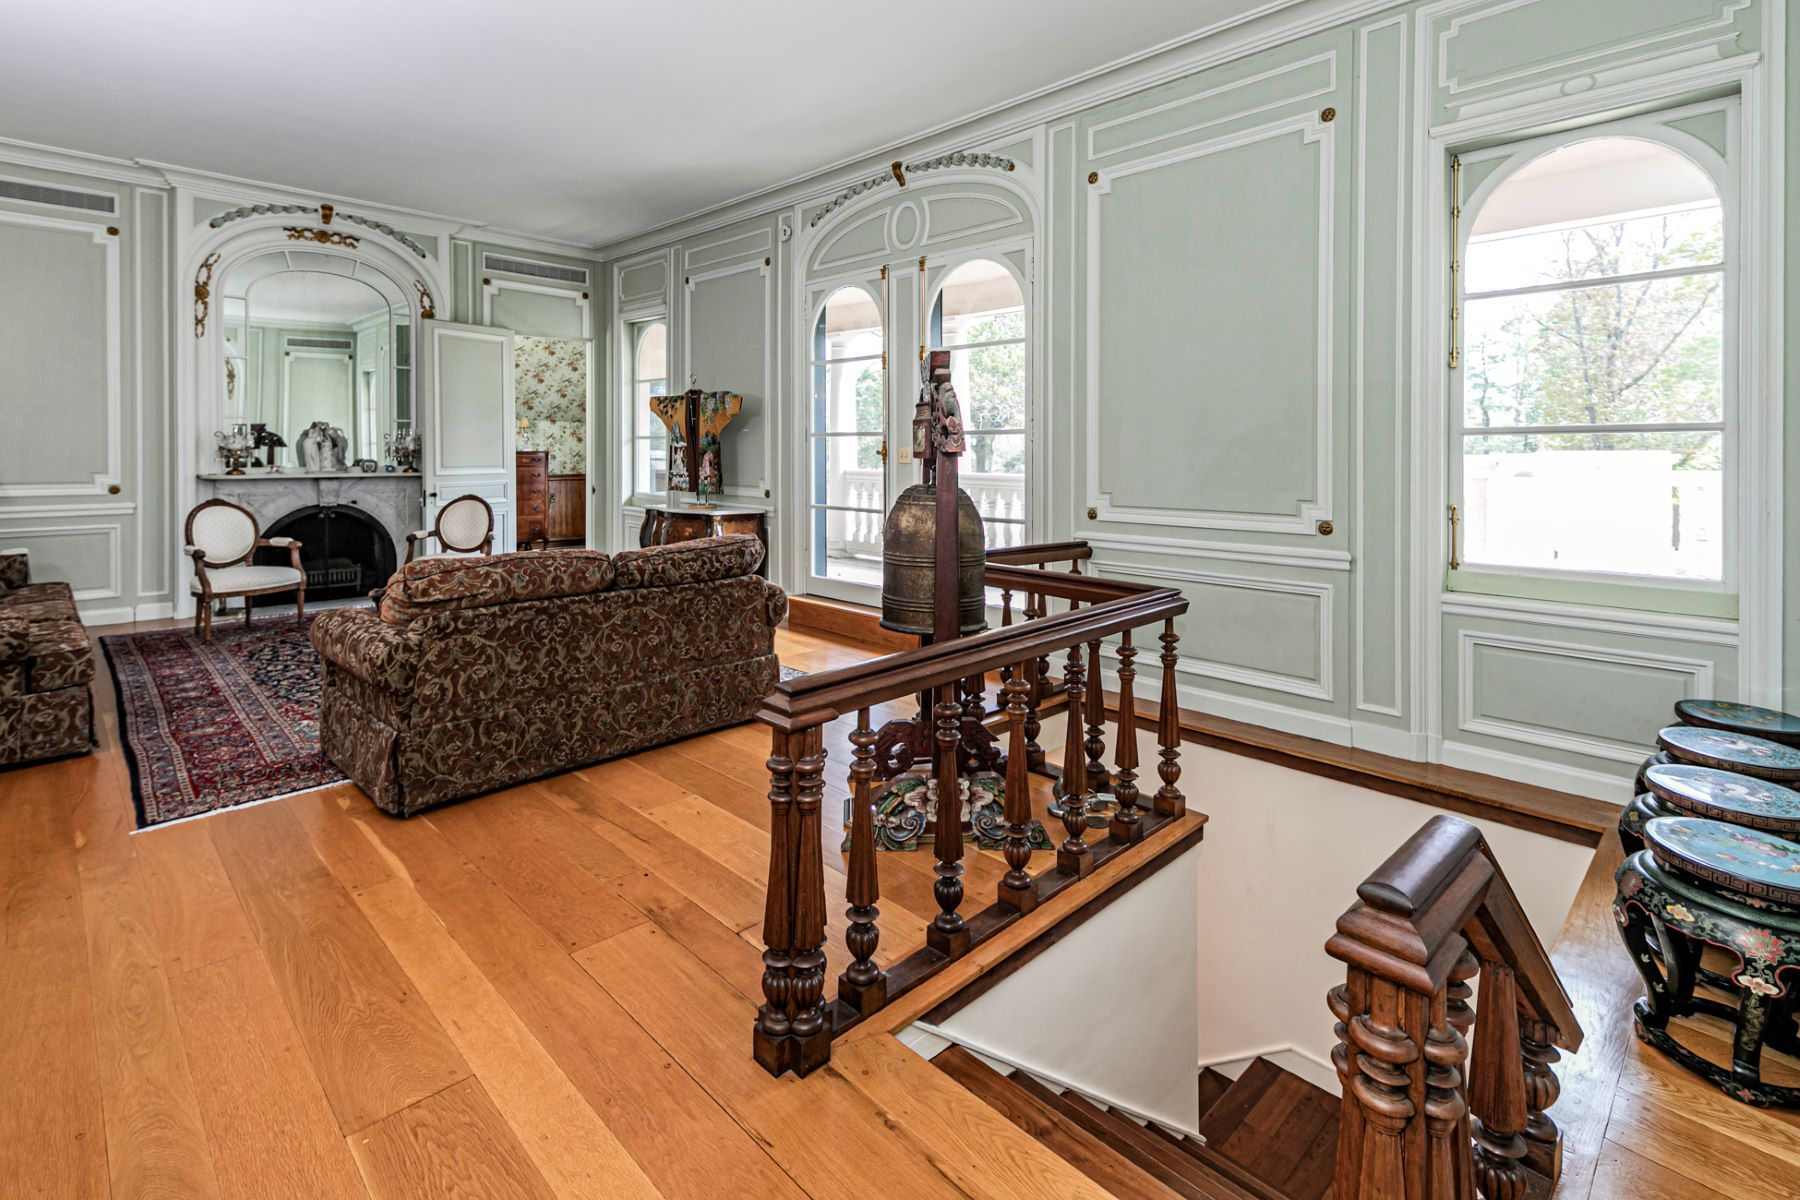 Additional photo for property listing at Write the Next Chapter of This Chateau's Epic Tale 306 Carter Road, Princeton, New Jersey 08540 United States